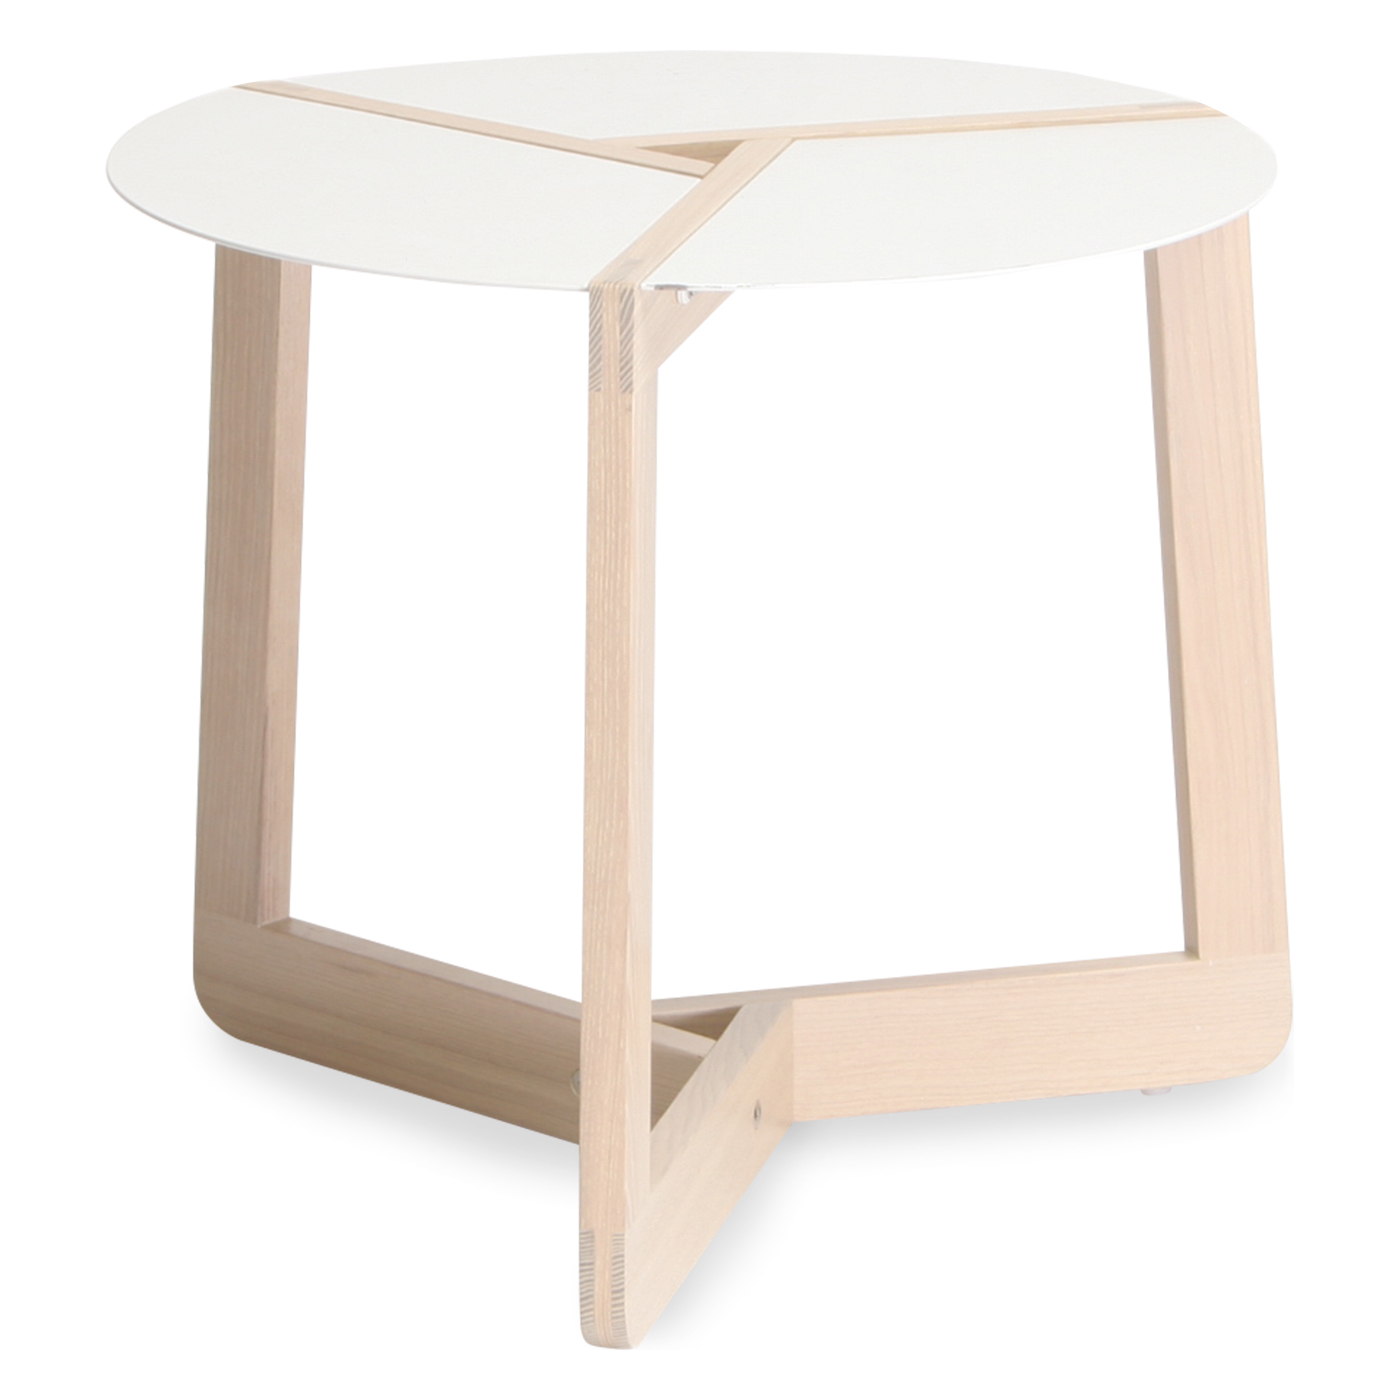 ikea long side table probably perfect real small round cherry end beautiful wood adorable design the brown excellent modern white ash bookcase impressive gold accent build patio